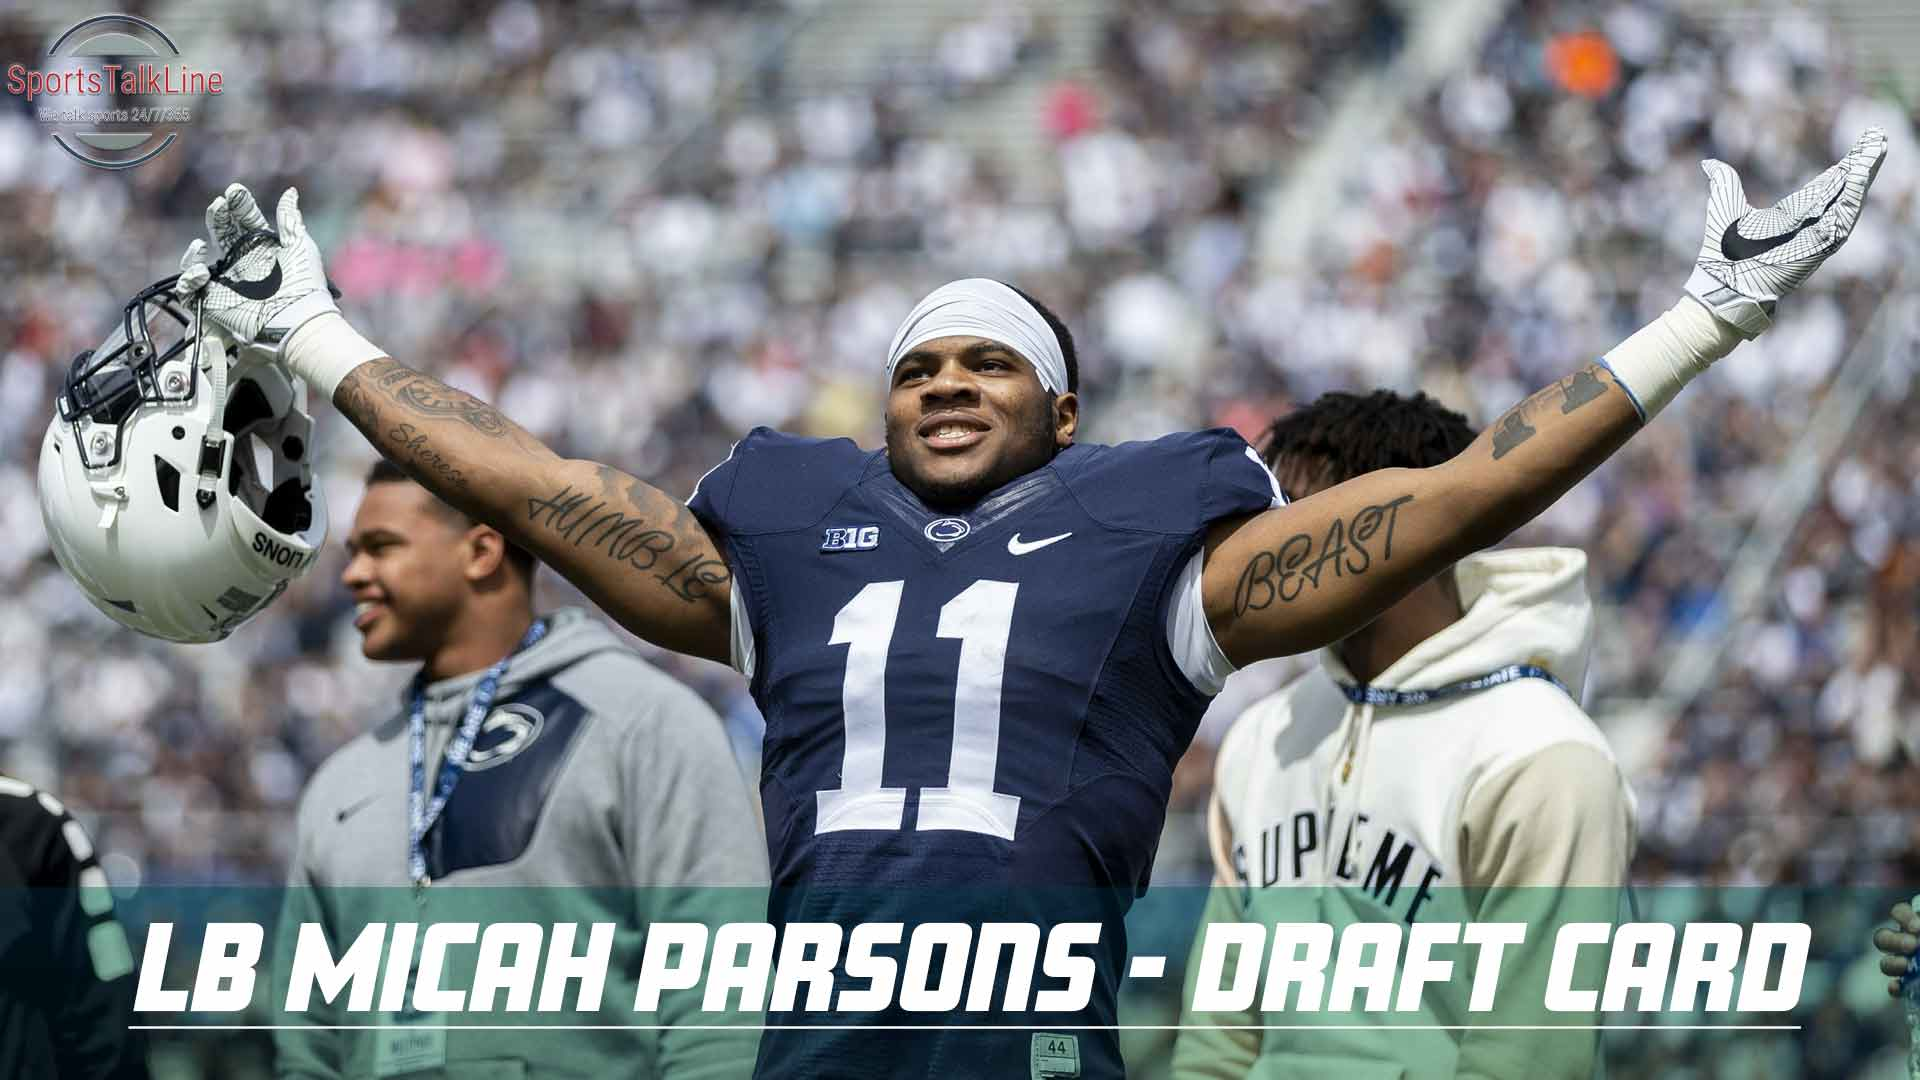 Micah-Parsons-Draft-Card